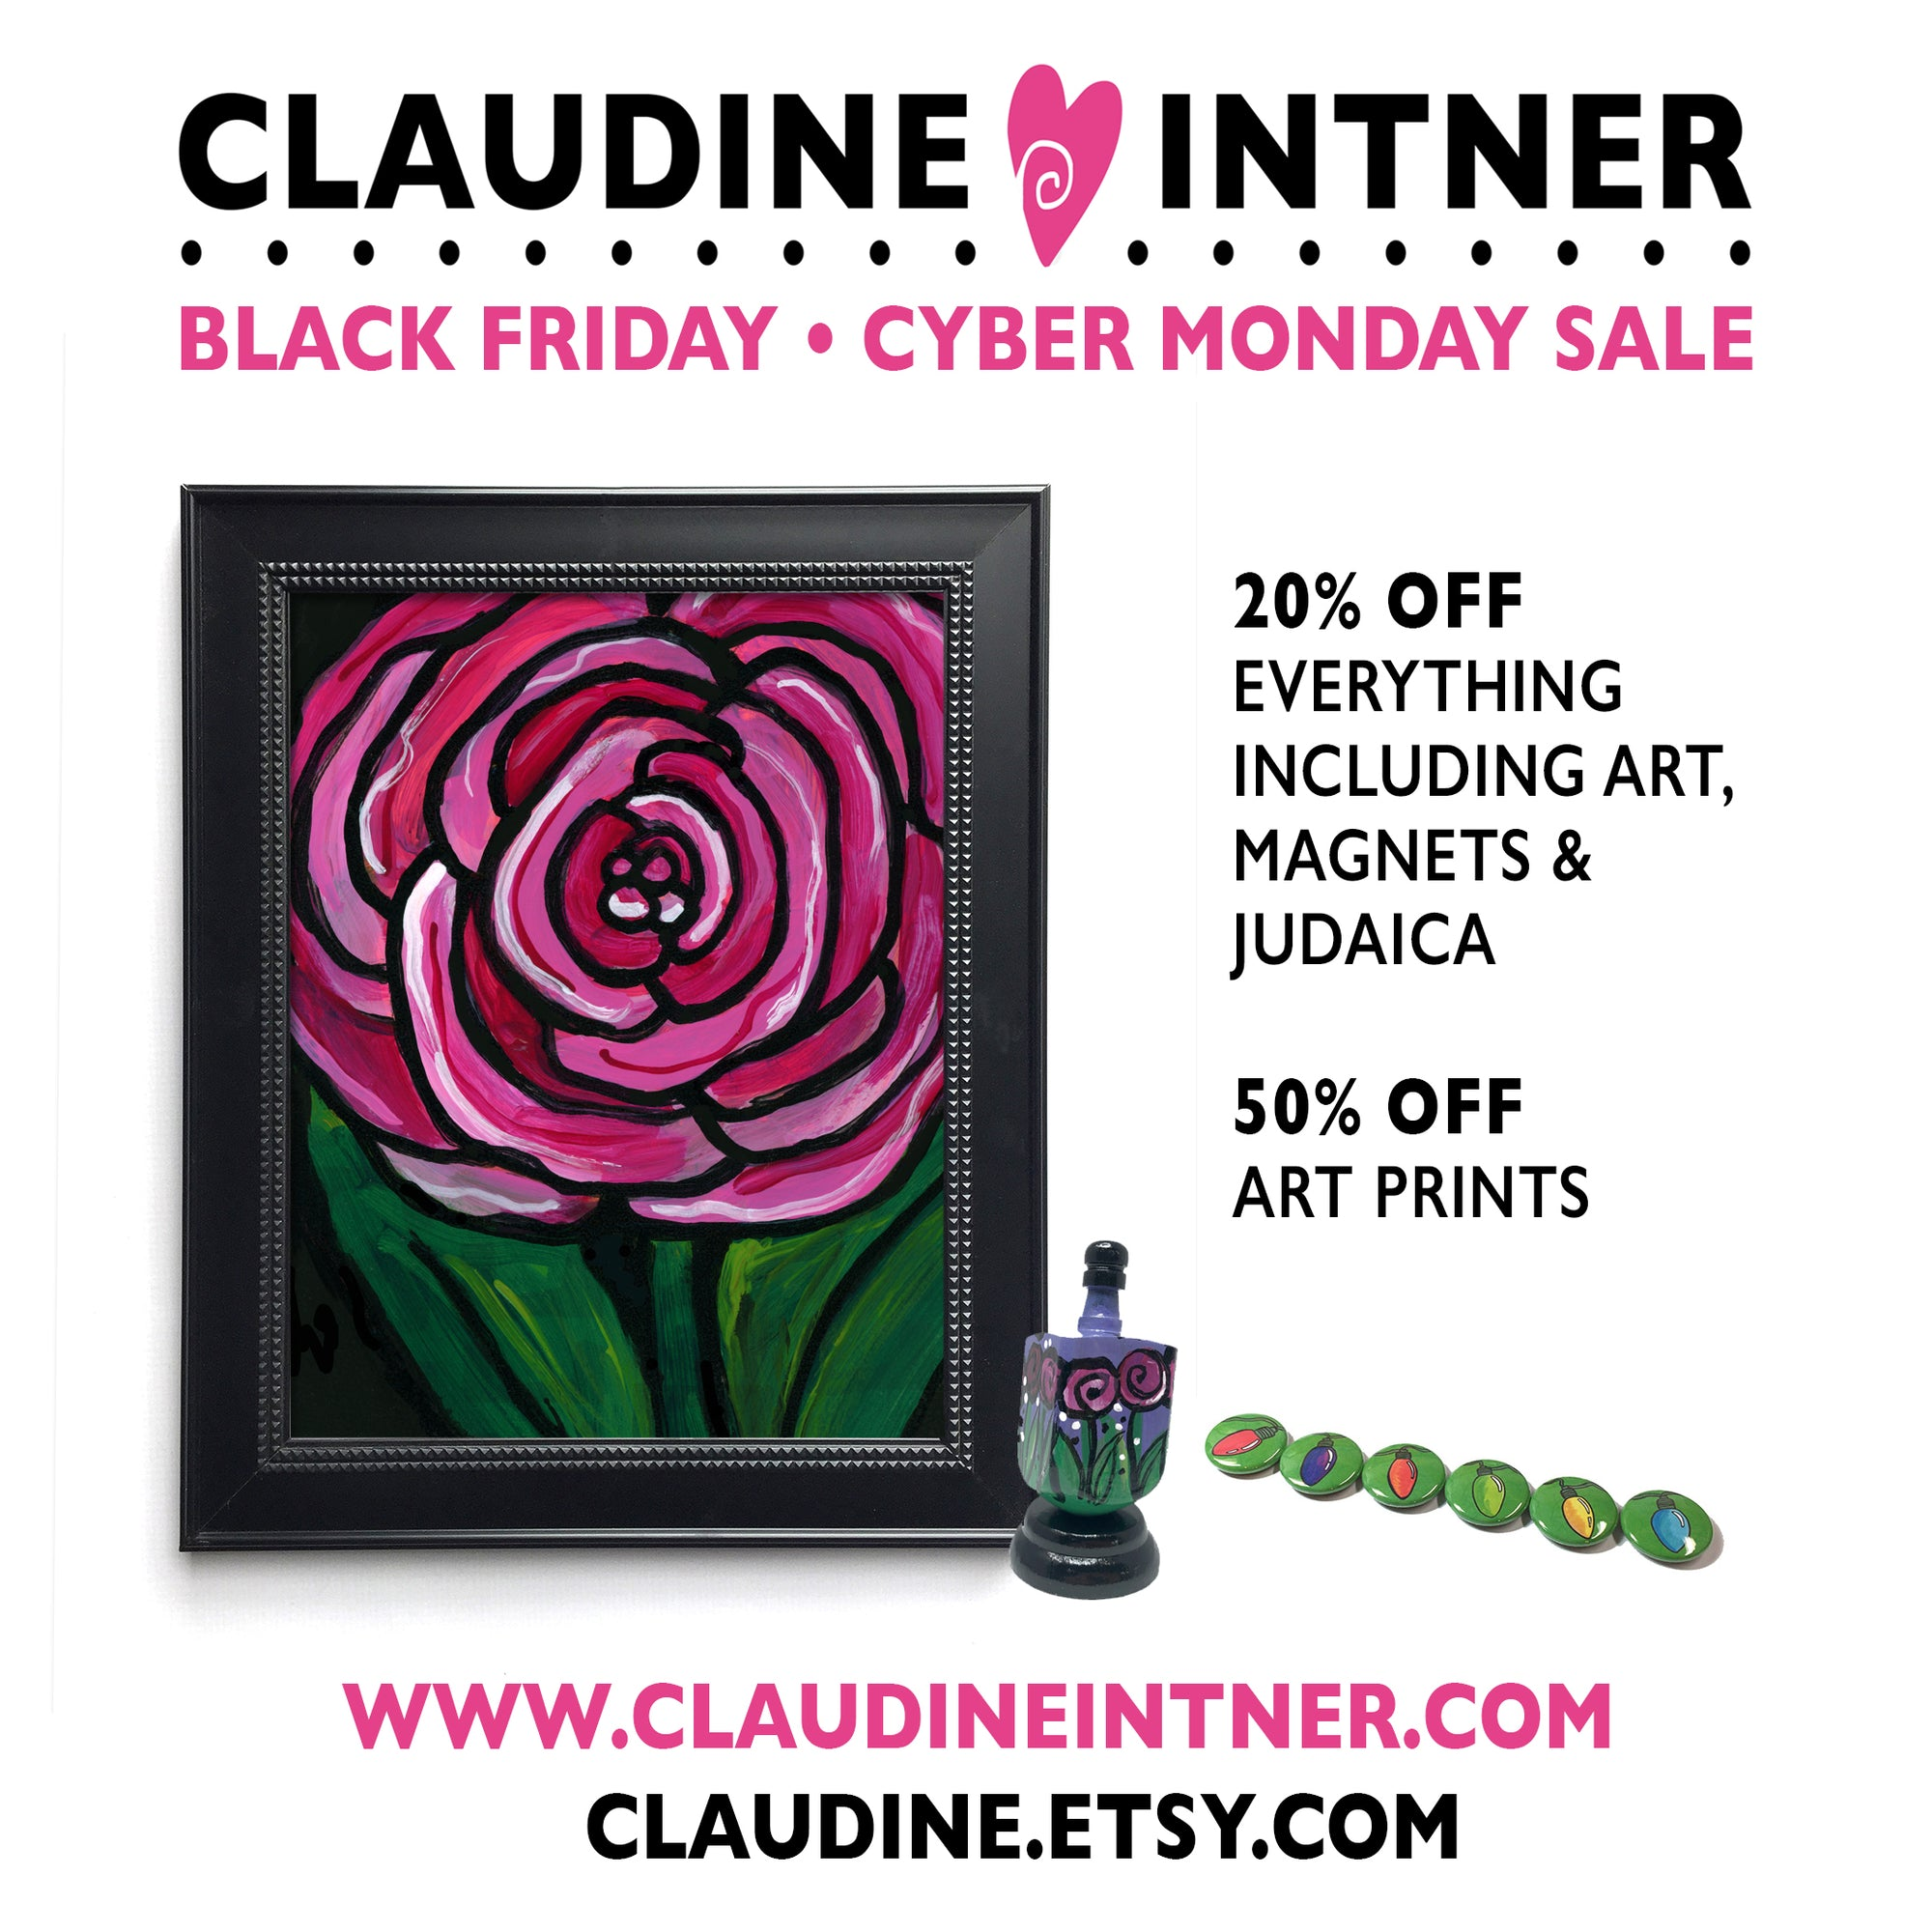 Black Friday Cyber Monday Sale - 20% off everything, 50% off prints